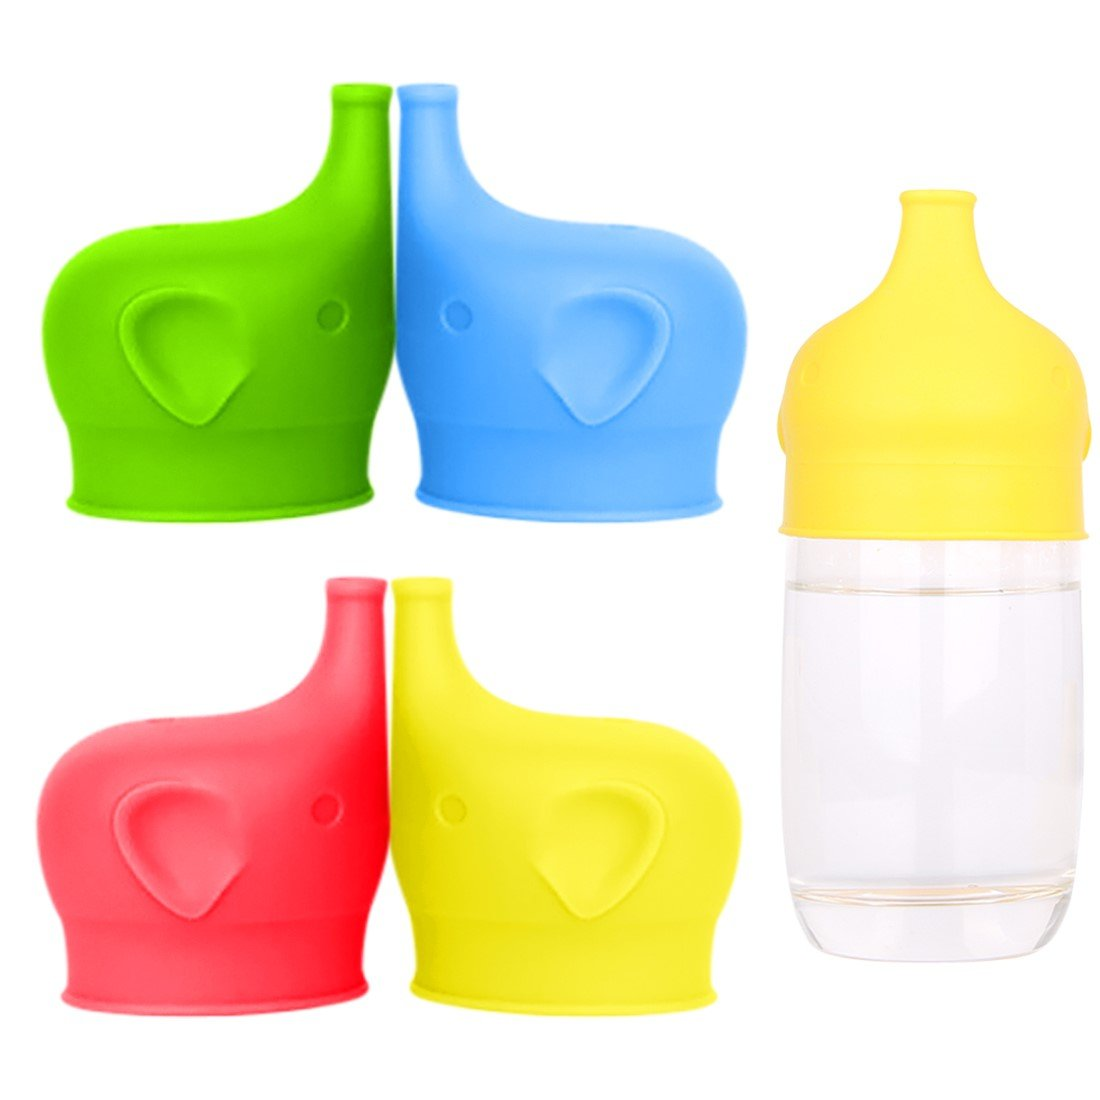 Baby Quick Cocinero Silicone Sippy Cup Lids for Toddlers Infants Babies Kids, Reusable, Spill-proof, Durable Stretches to Cover Tumblers, Mugs, Glass, Pack of 4 Blue Green Red Yellow, FDA Approved